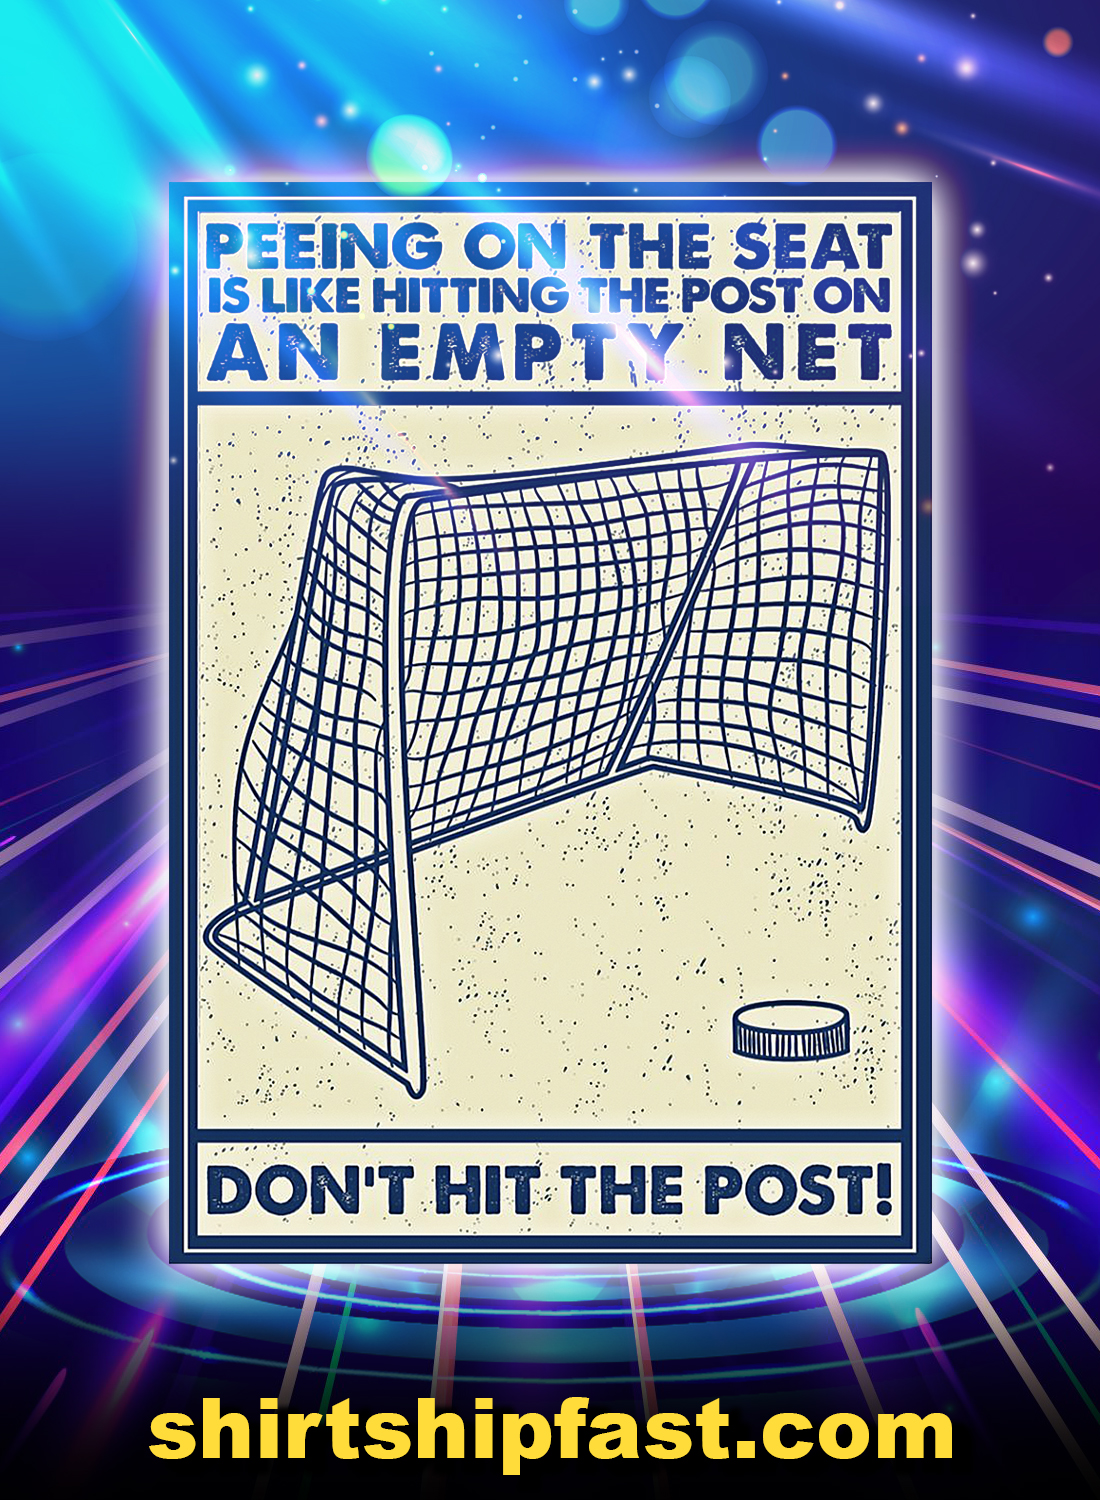 Retro Hockey peeing on the seat is like hitting the post on an empty net poster - A4